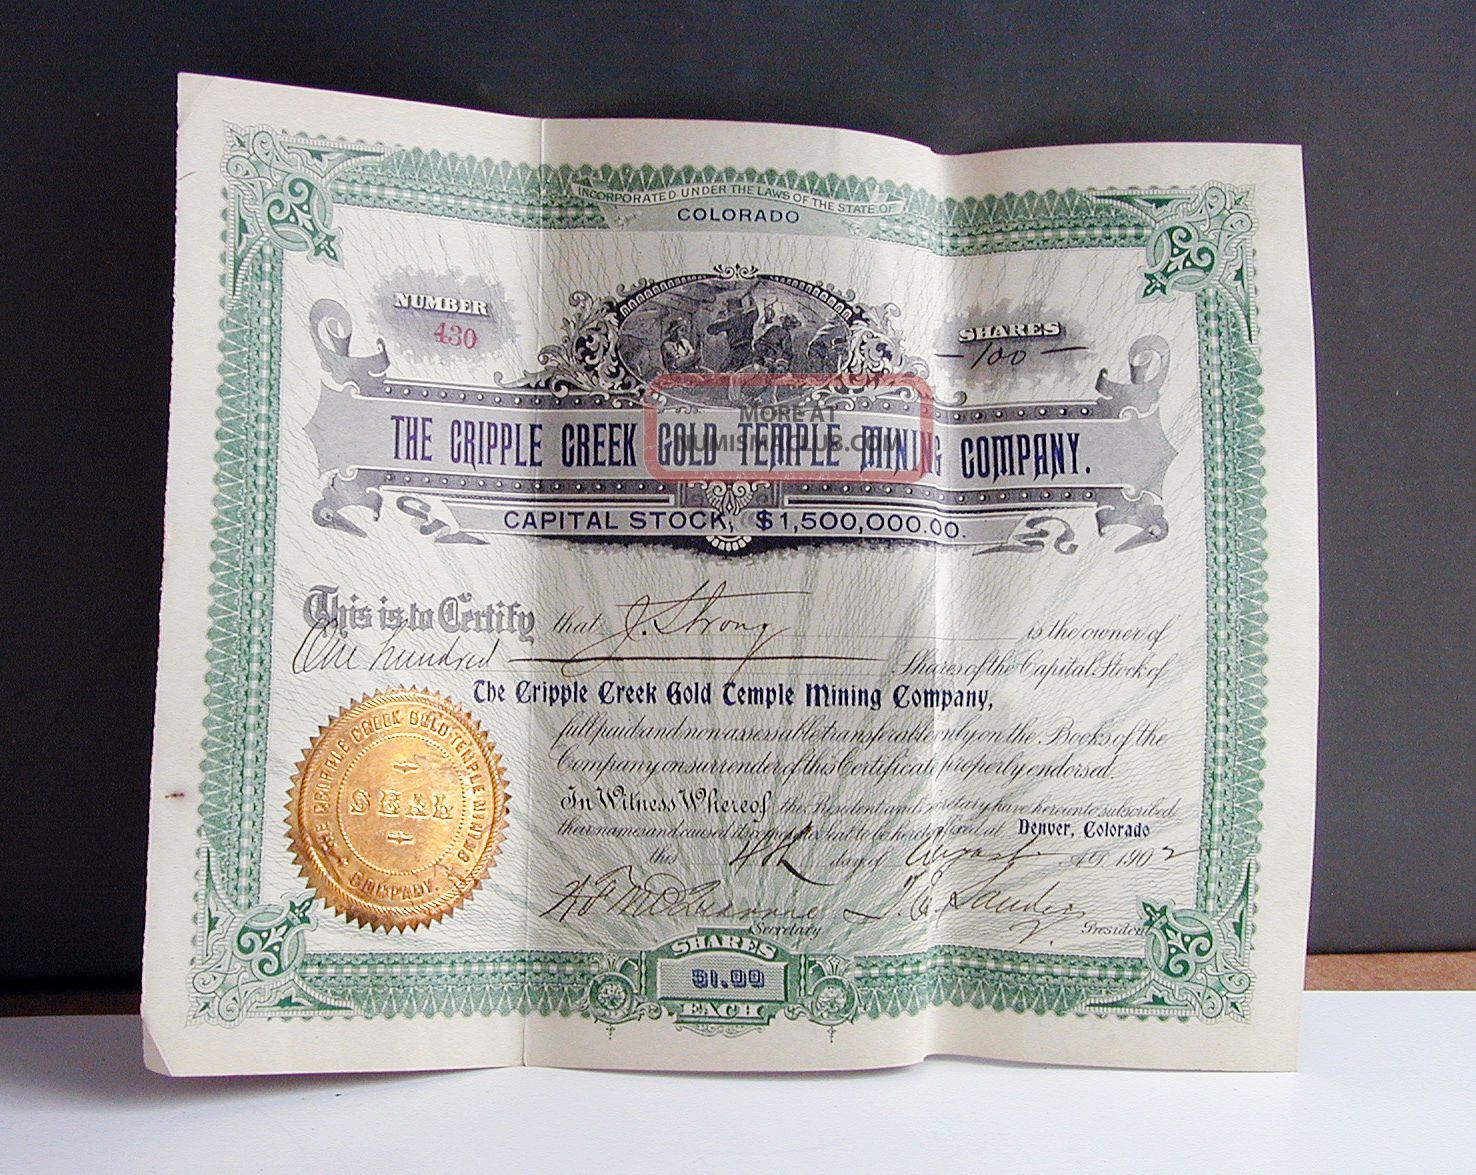 Old Cripple Creek Gold Mining Stock Certificate Colorado Rush Teller County Co Stocks & Bonds, Scripophily photo